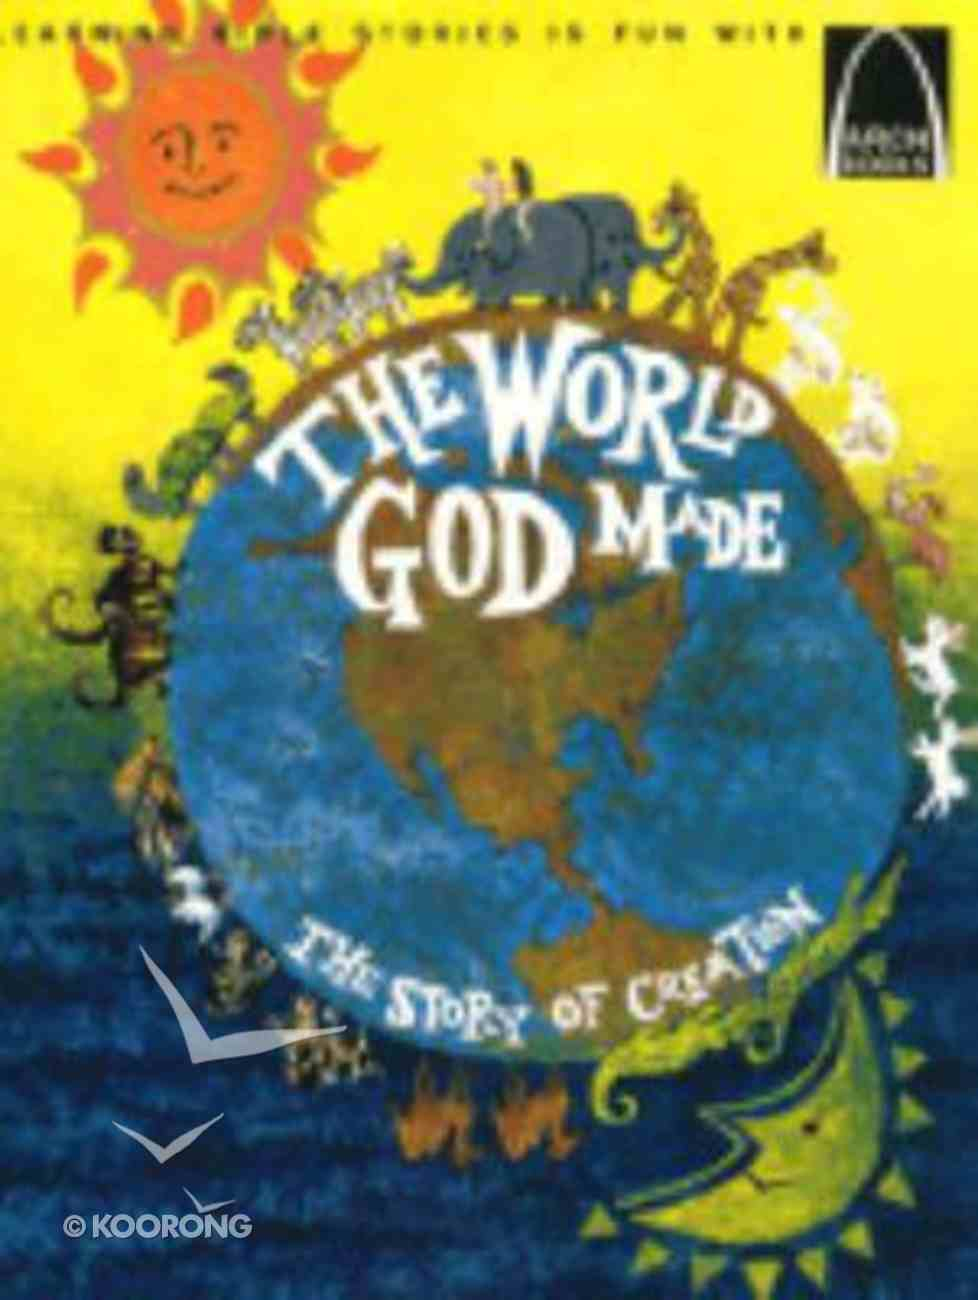 The World God Made (Arch Books Series) Paperback